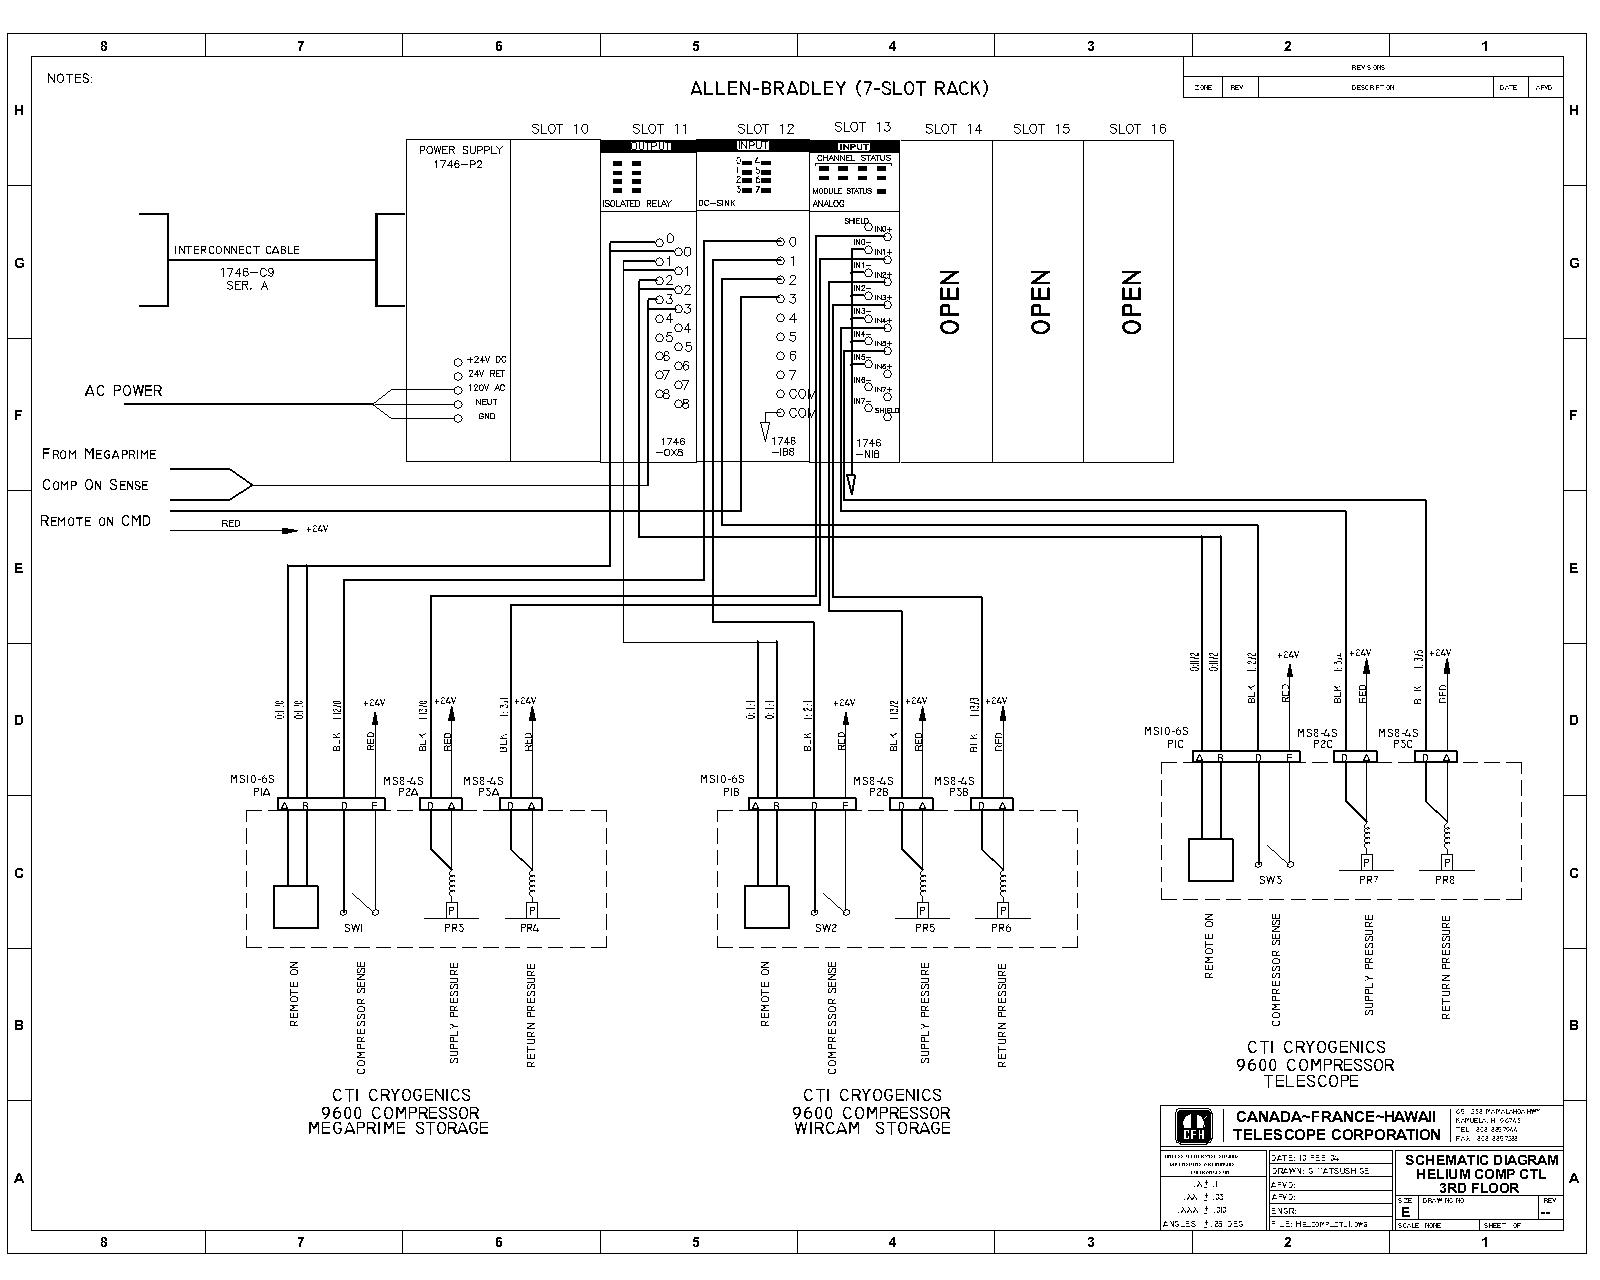 1756 If16 Wiring Diagram 1756-Ib16 Wiring Diagram Wiring